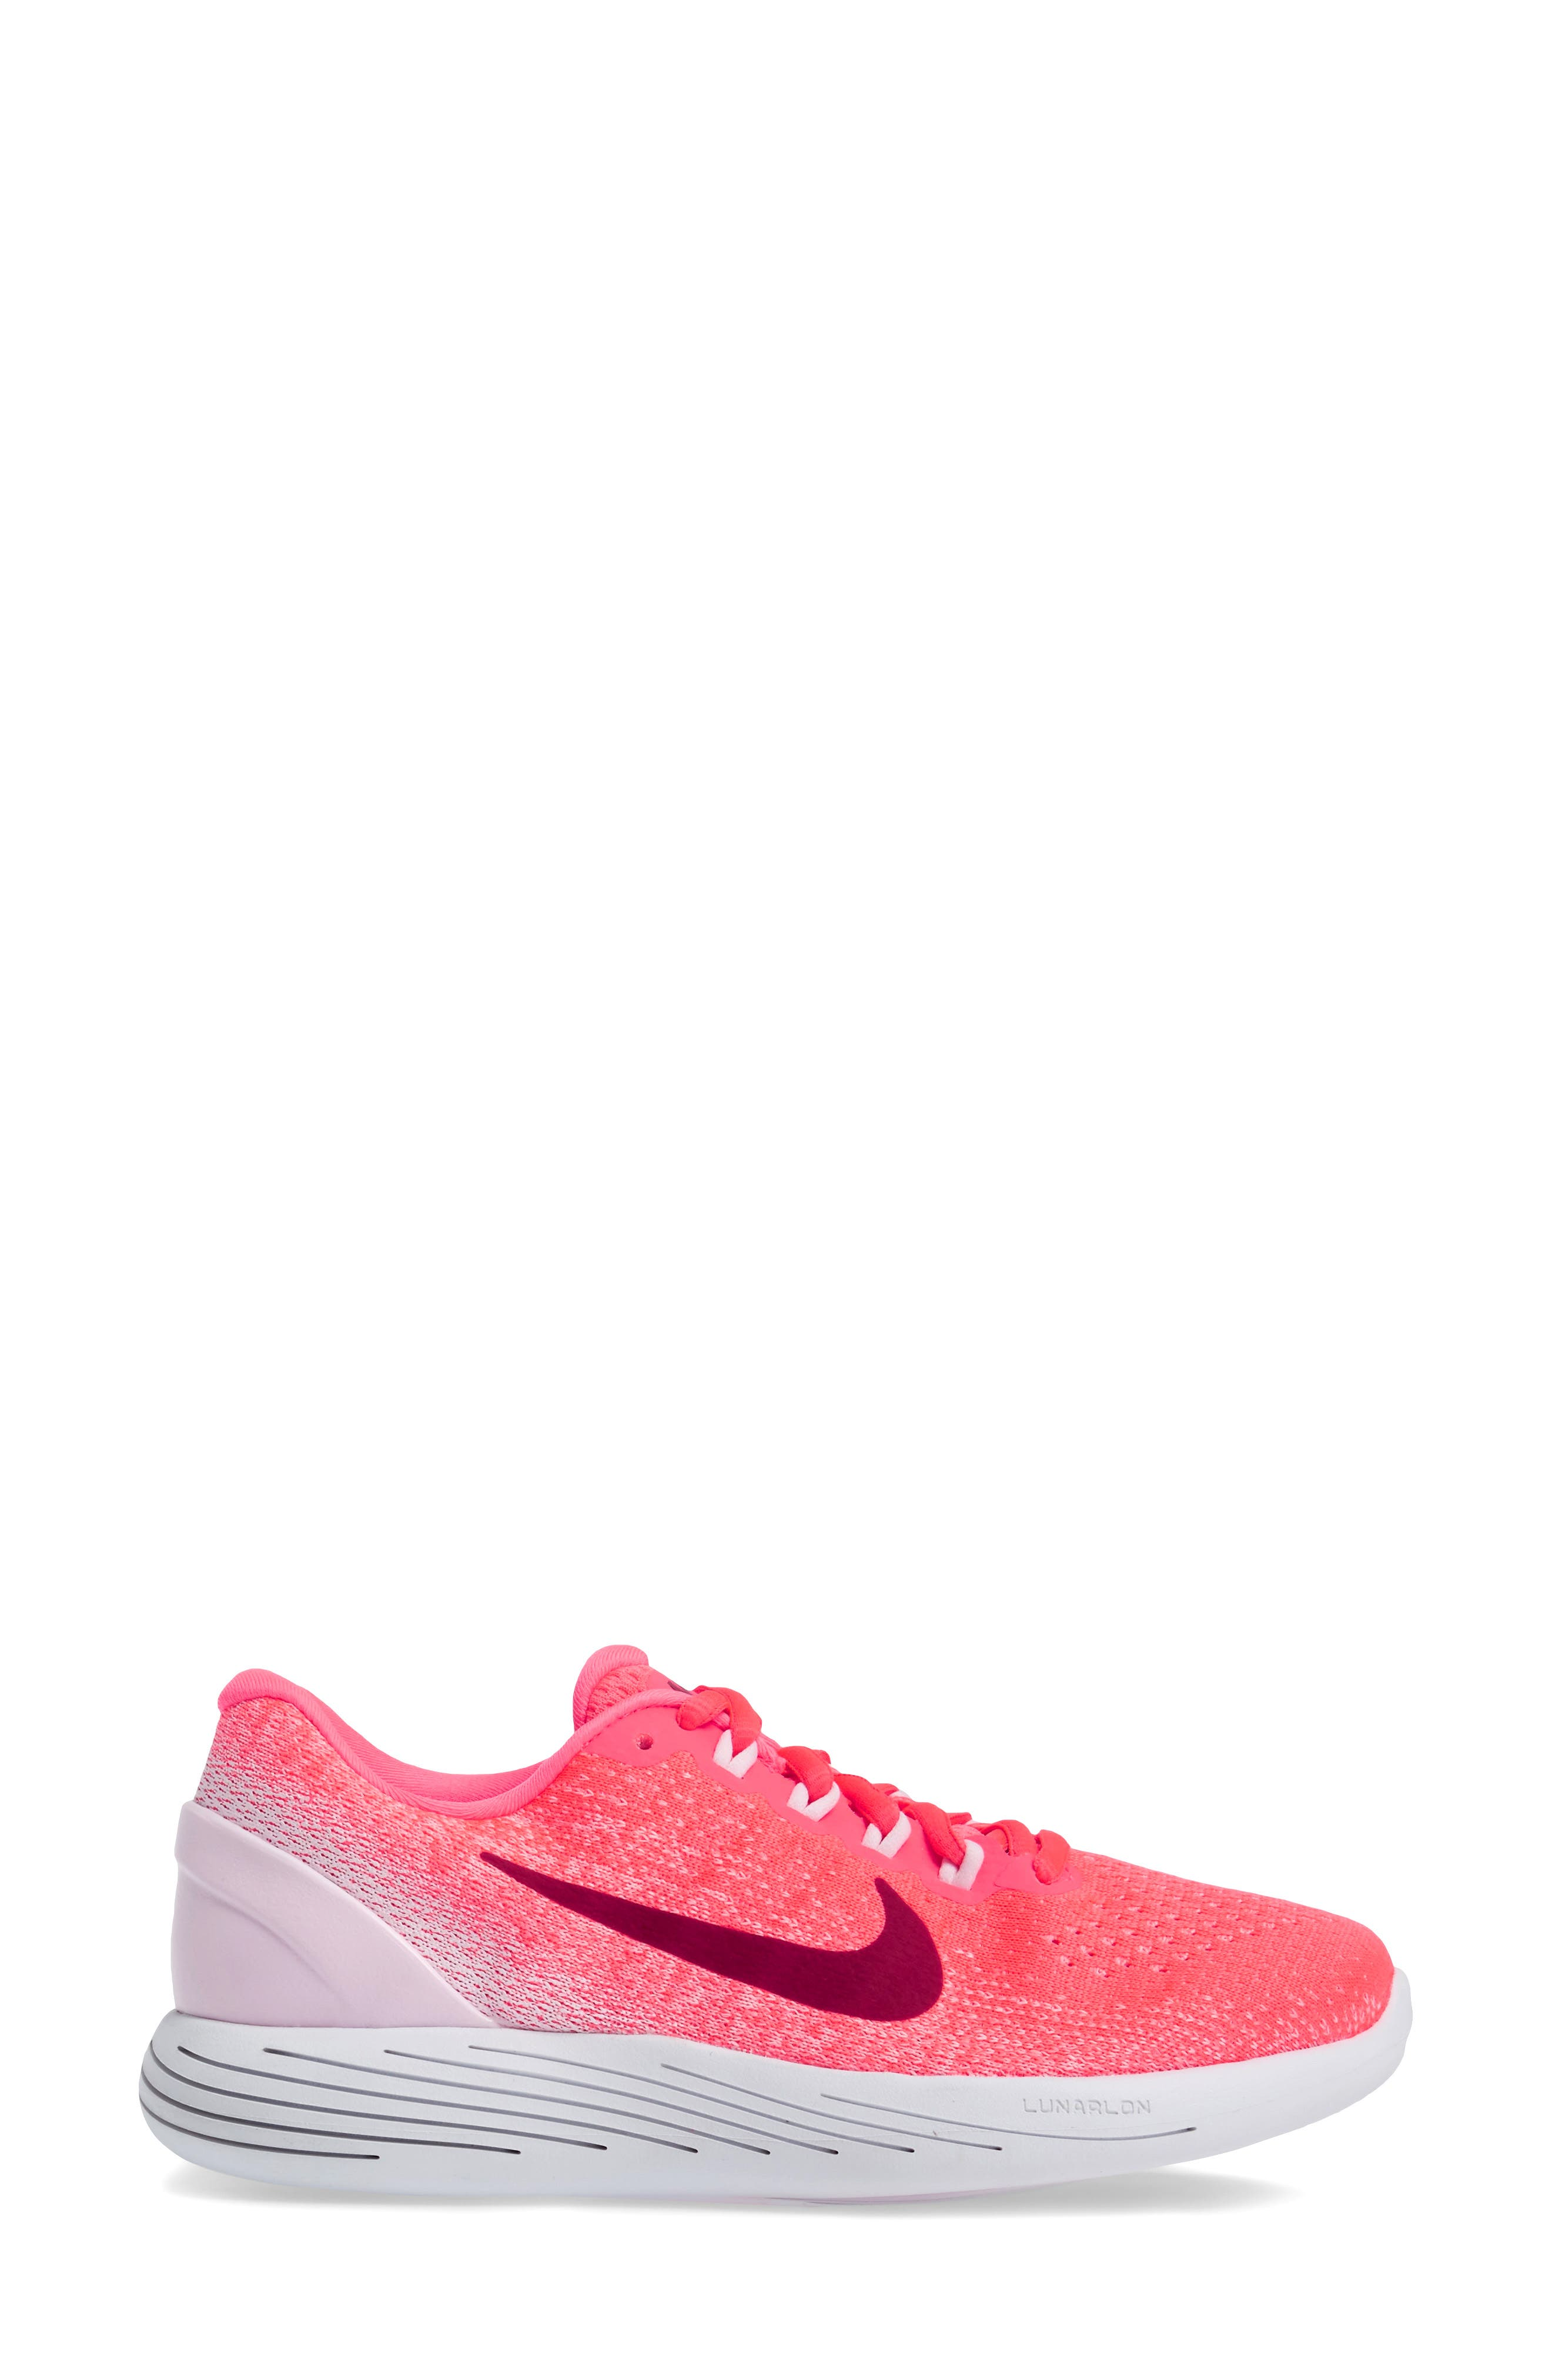 LunarGlide 9 Running Shoe,                             Alternate thumbnail 4, color,                             Hot Punch/ Noble Red/ Arctic